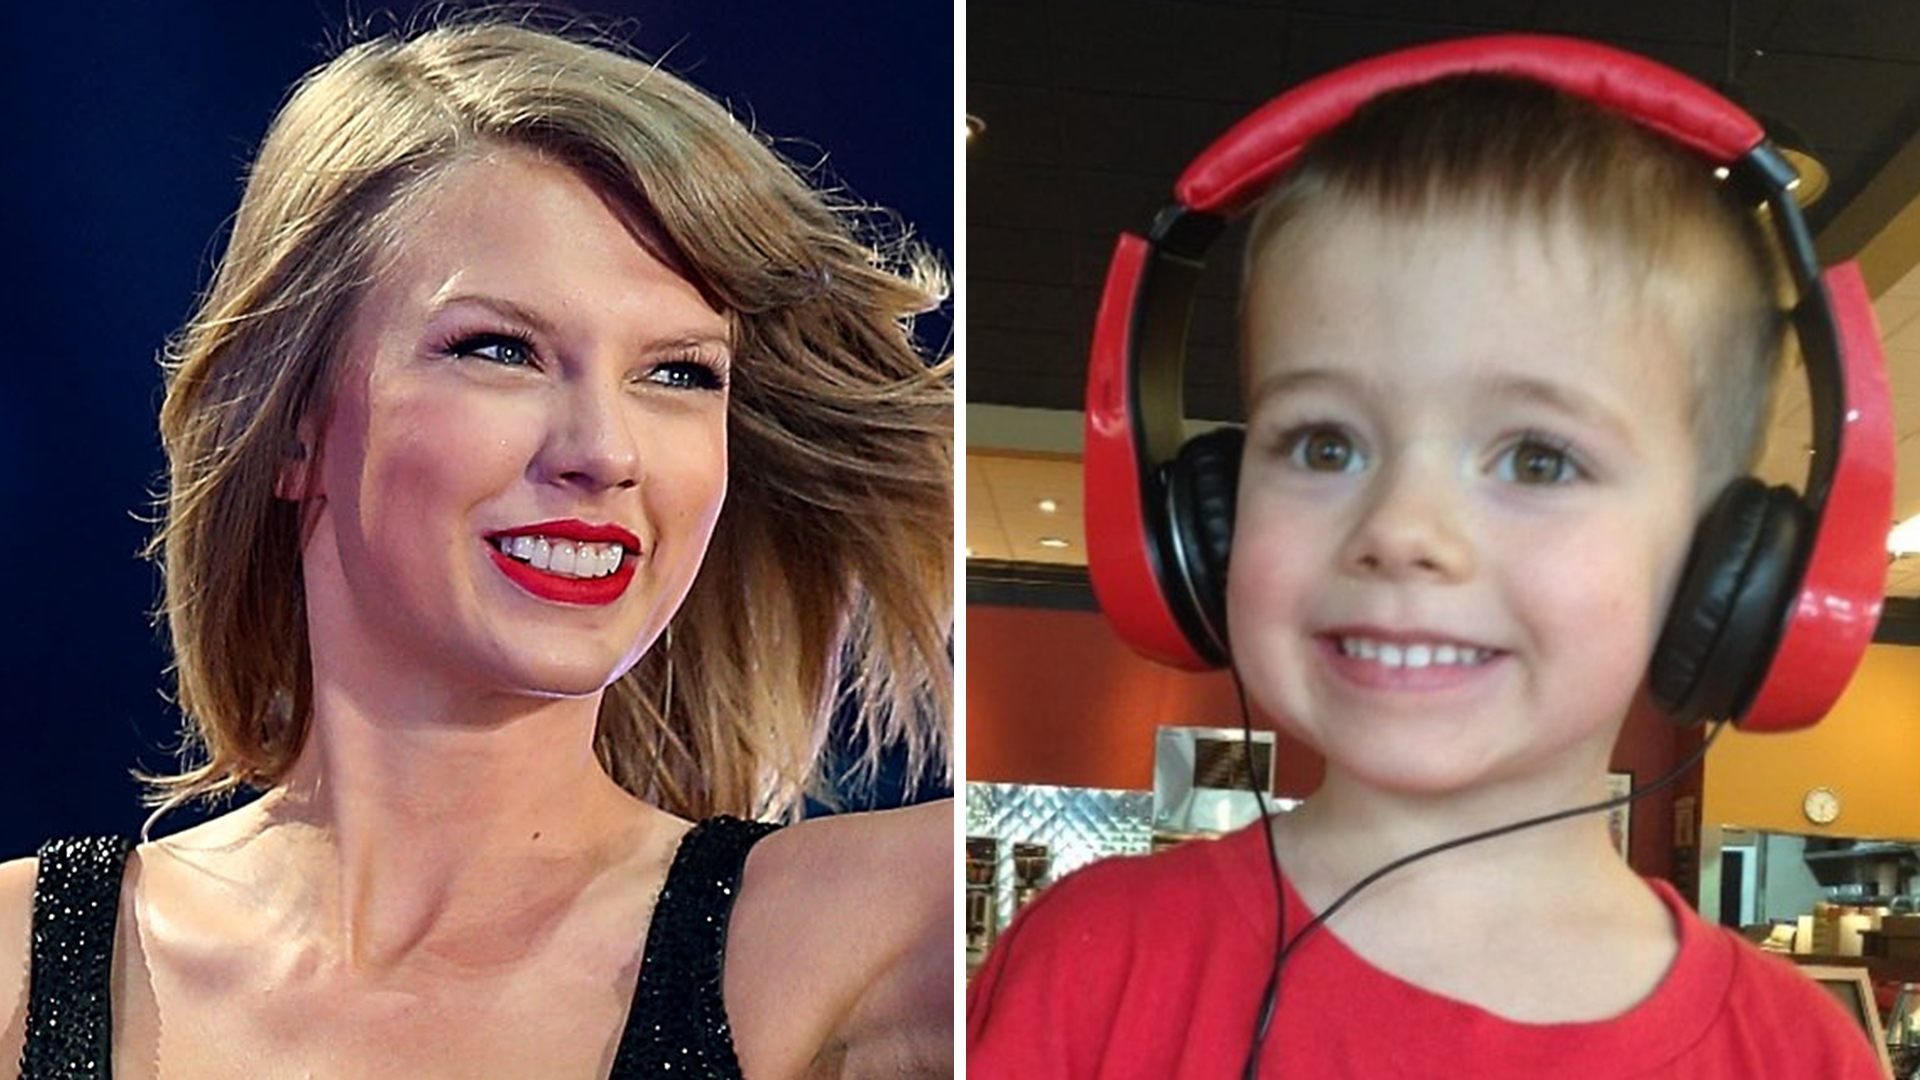 Taylor Swift Donates 10 000 So 5 Year Old Boy With Autism